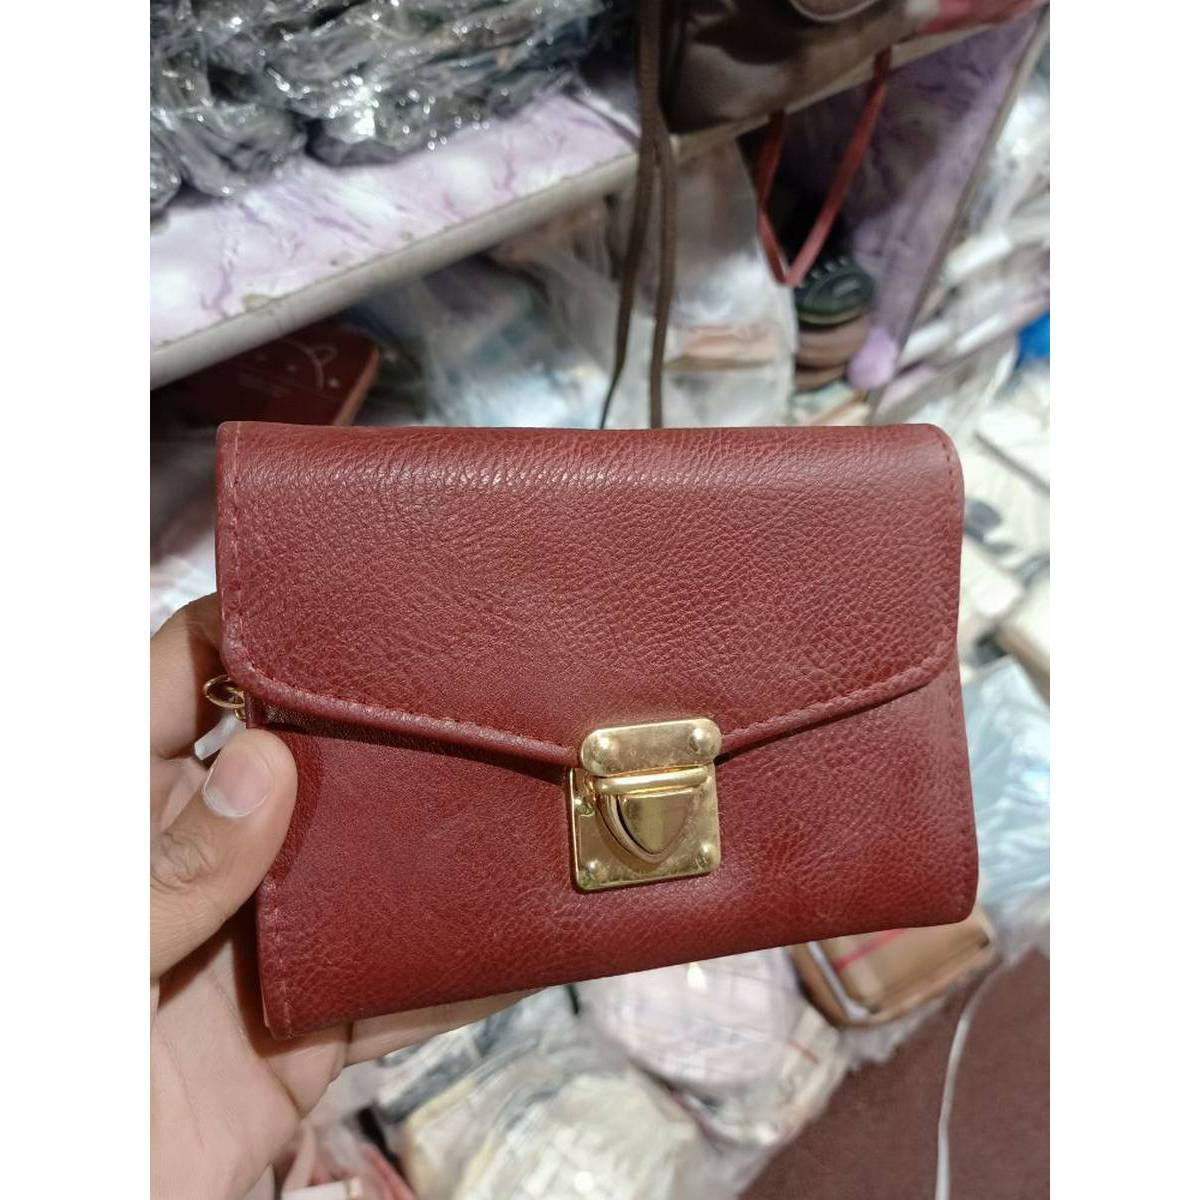 Girls Hand Clutch With Golden Long Chain